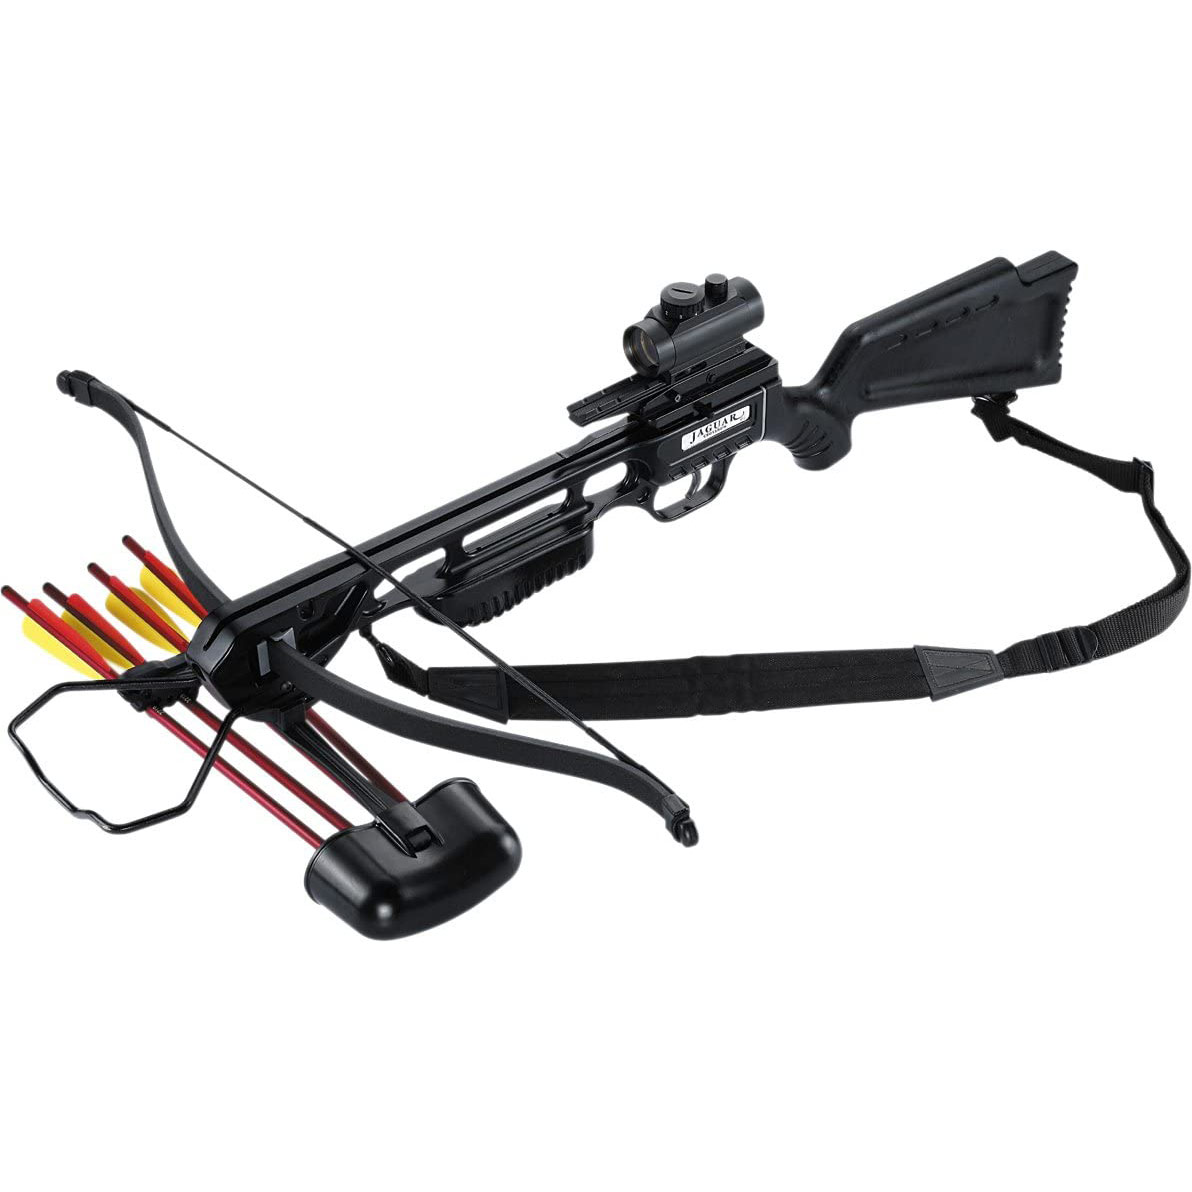 Jaguar Crossbow Review 2020